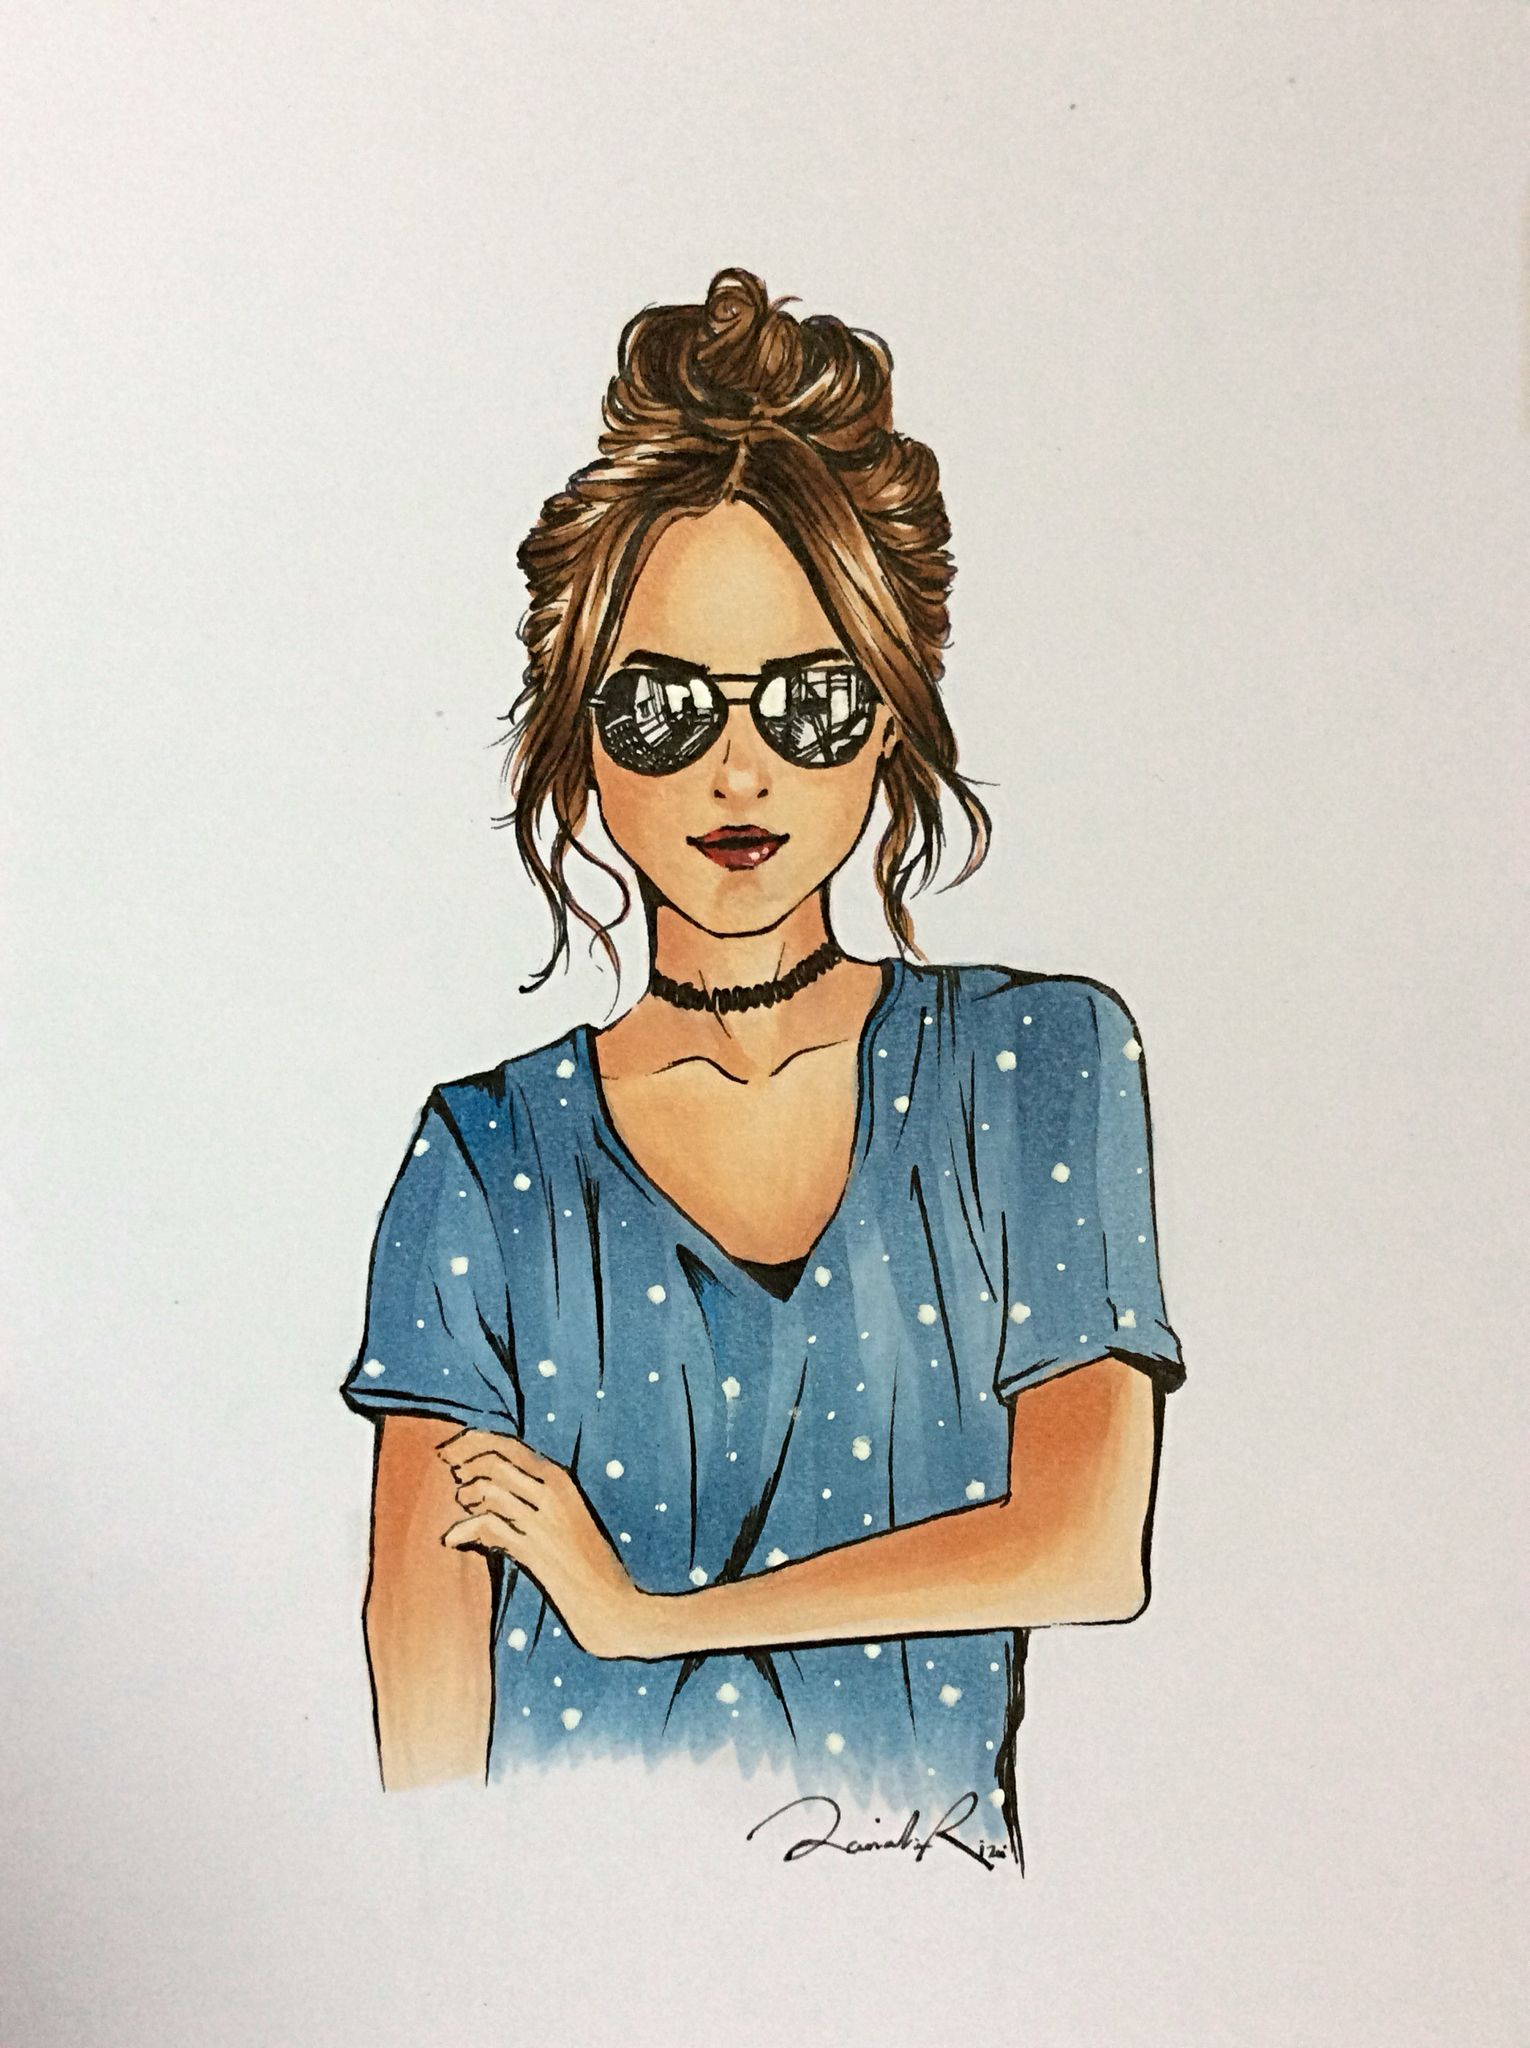 Copic drawing by me art girl sunglasses messy bun